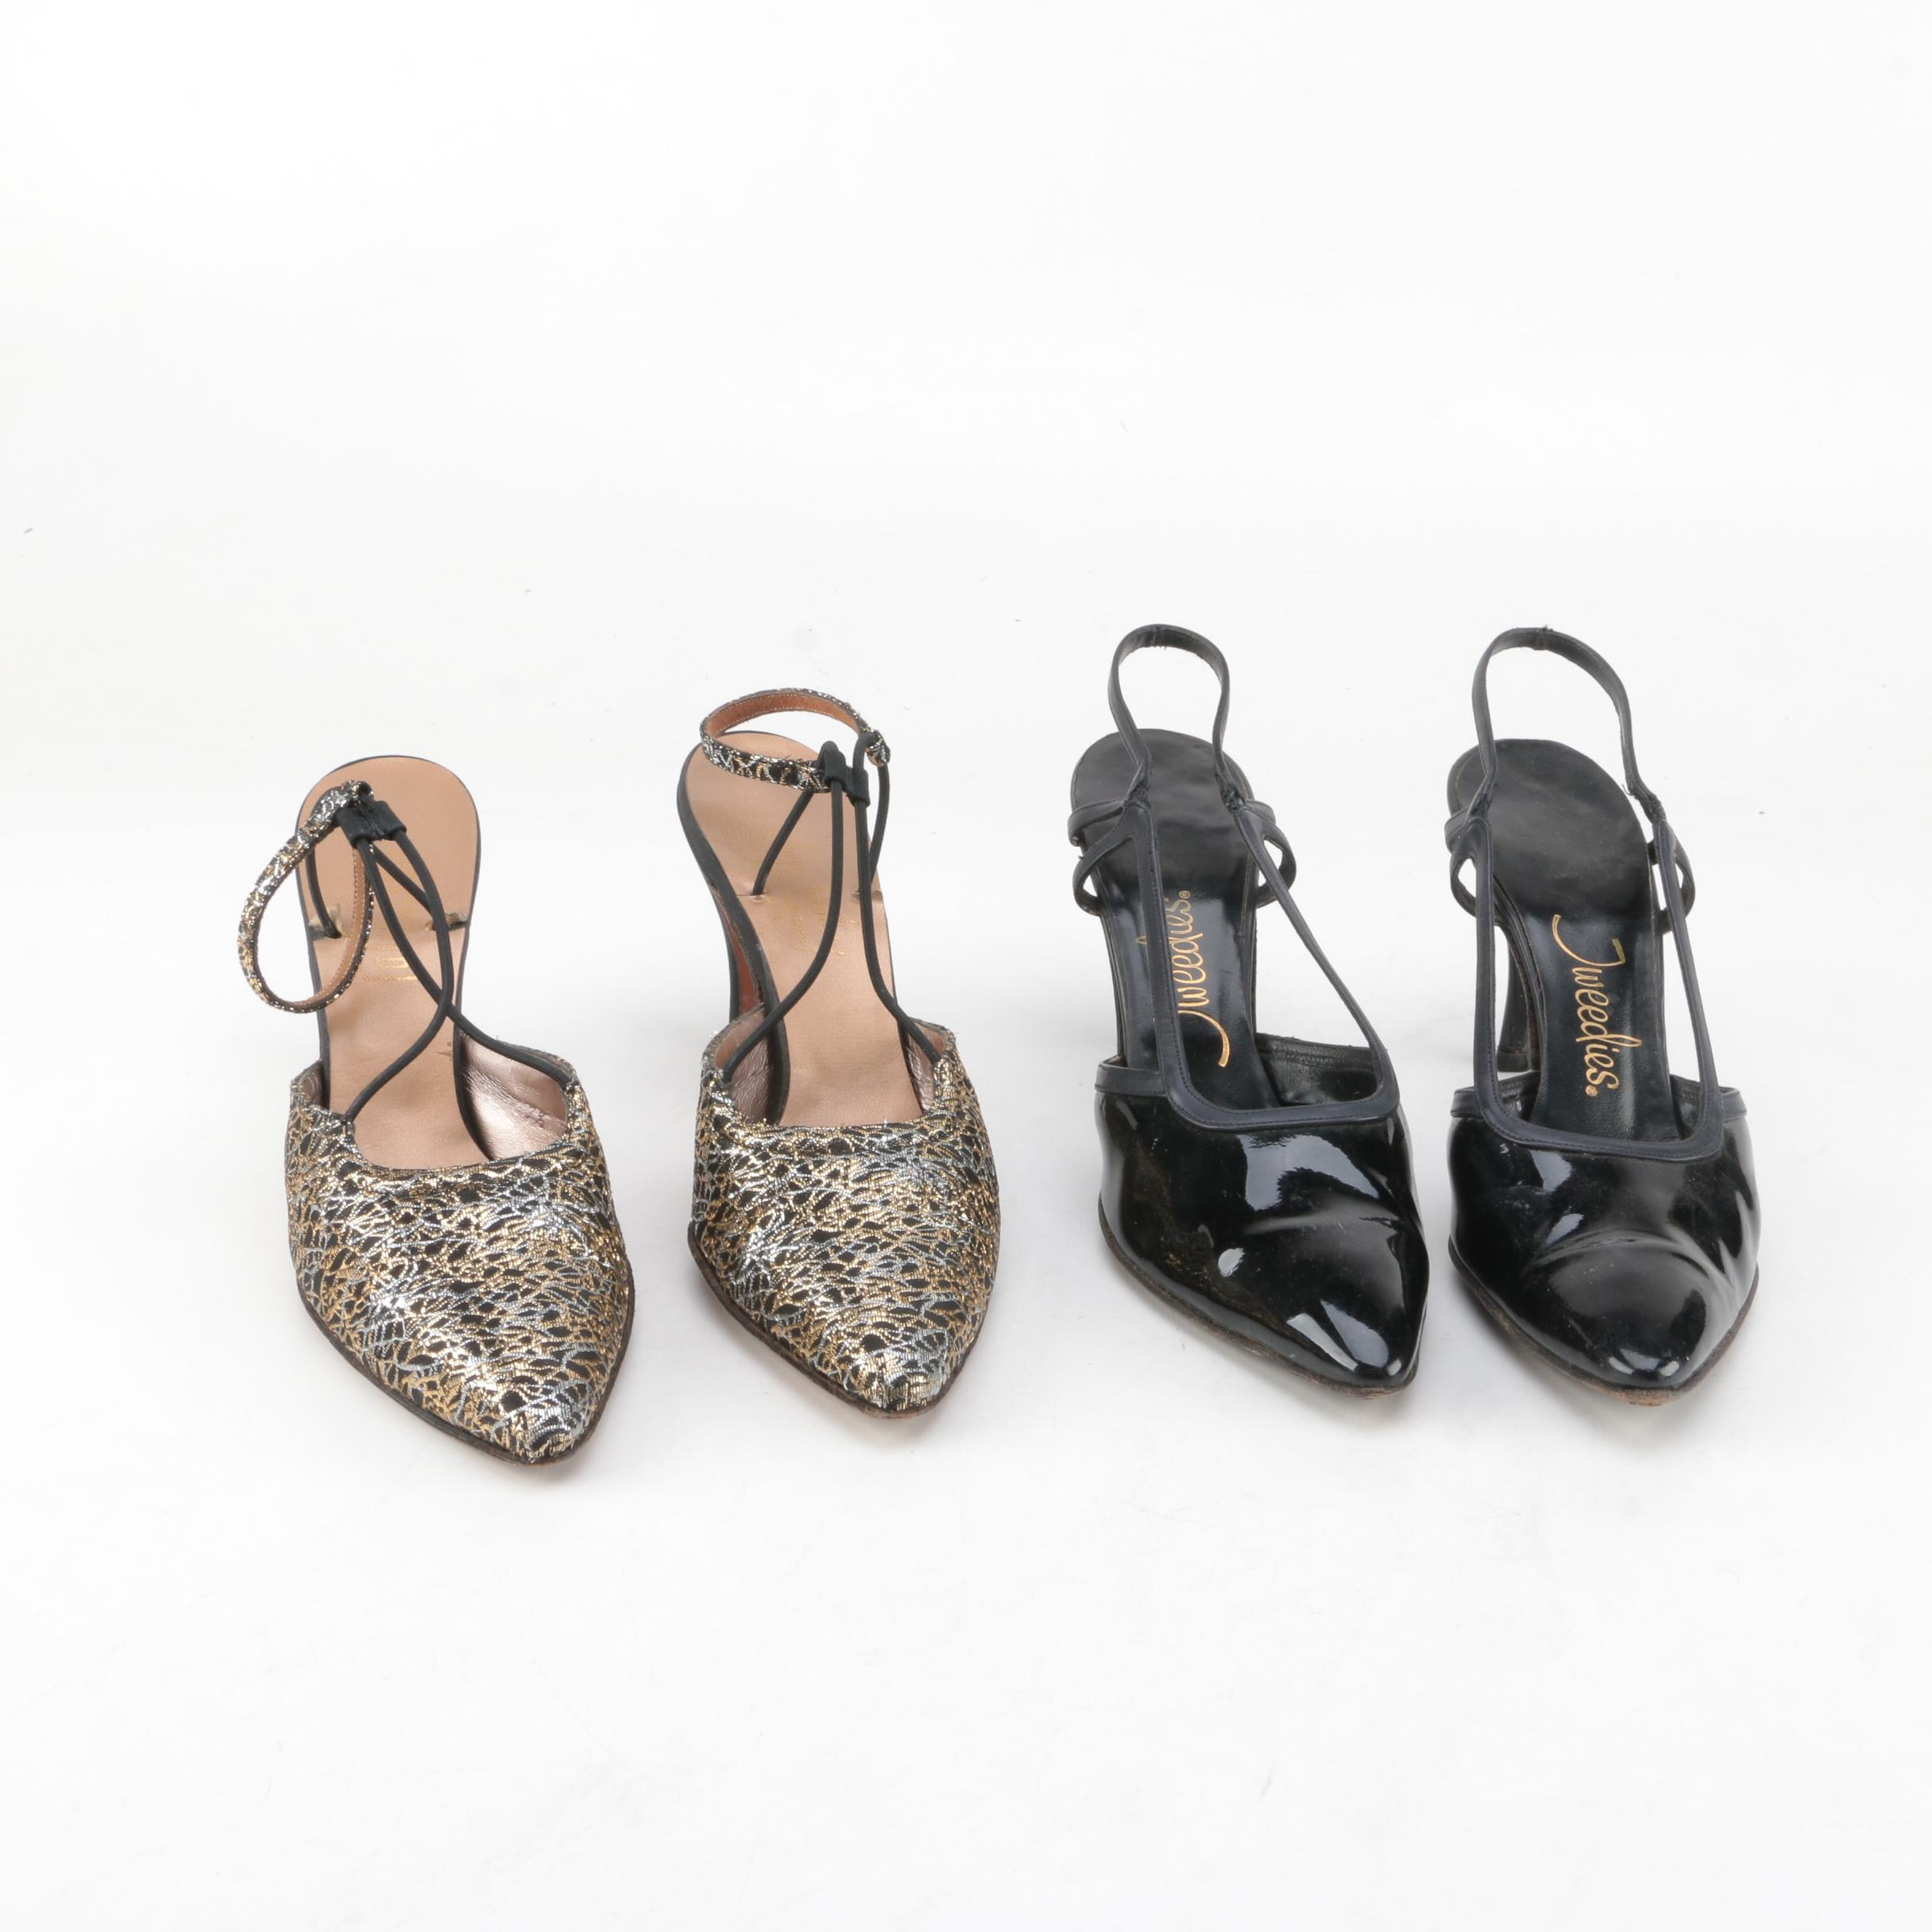 Two Pairs of Vintage High Heeled Dress Sandals